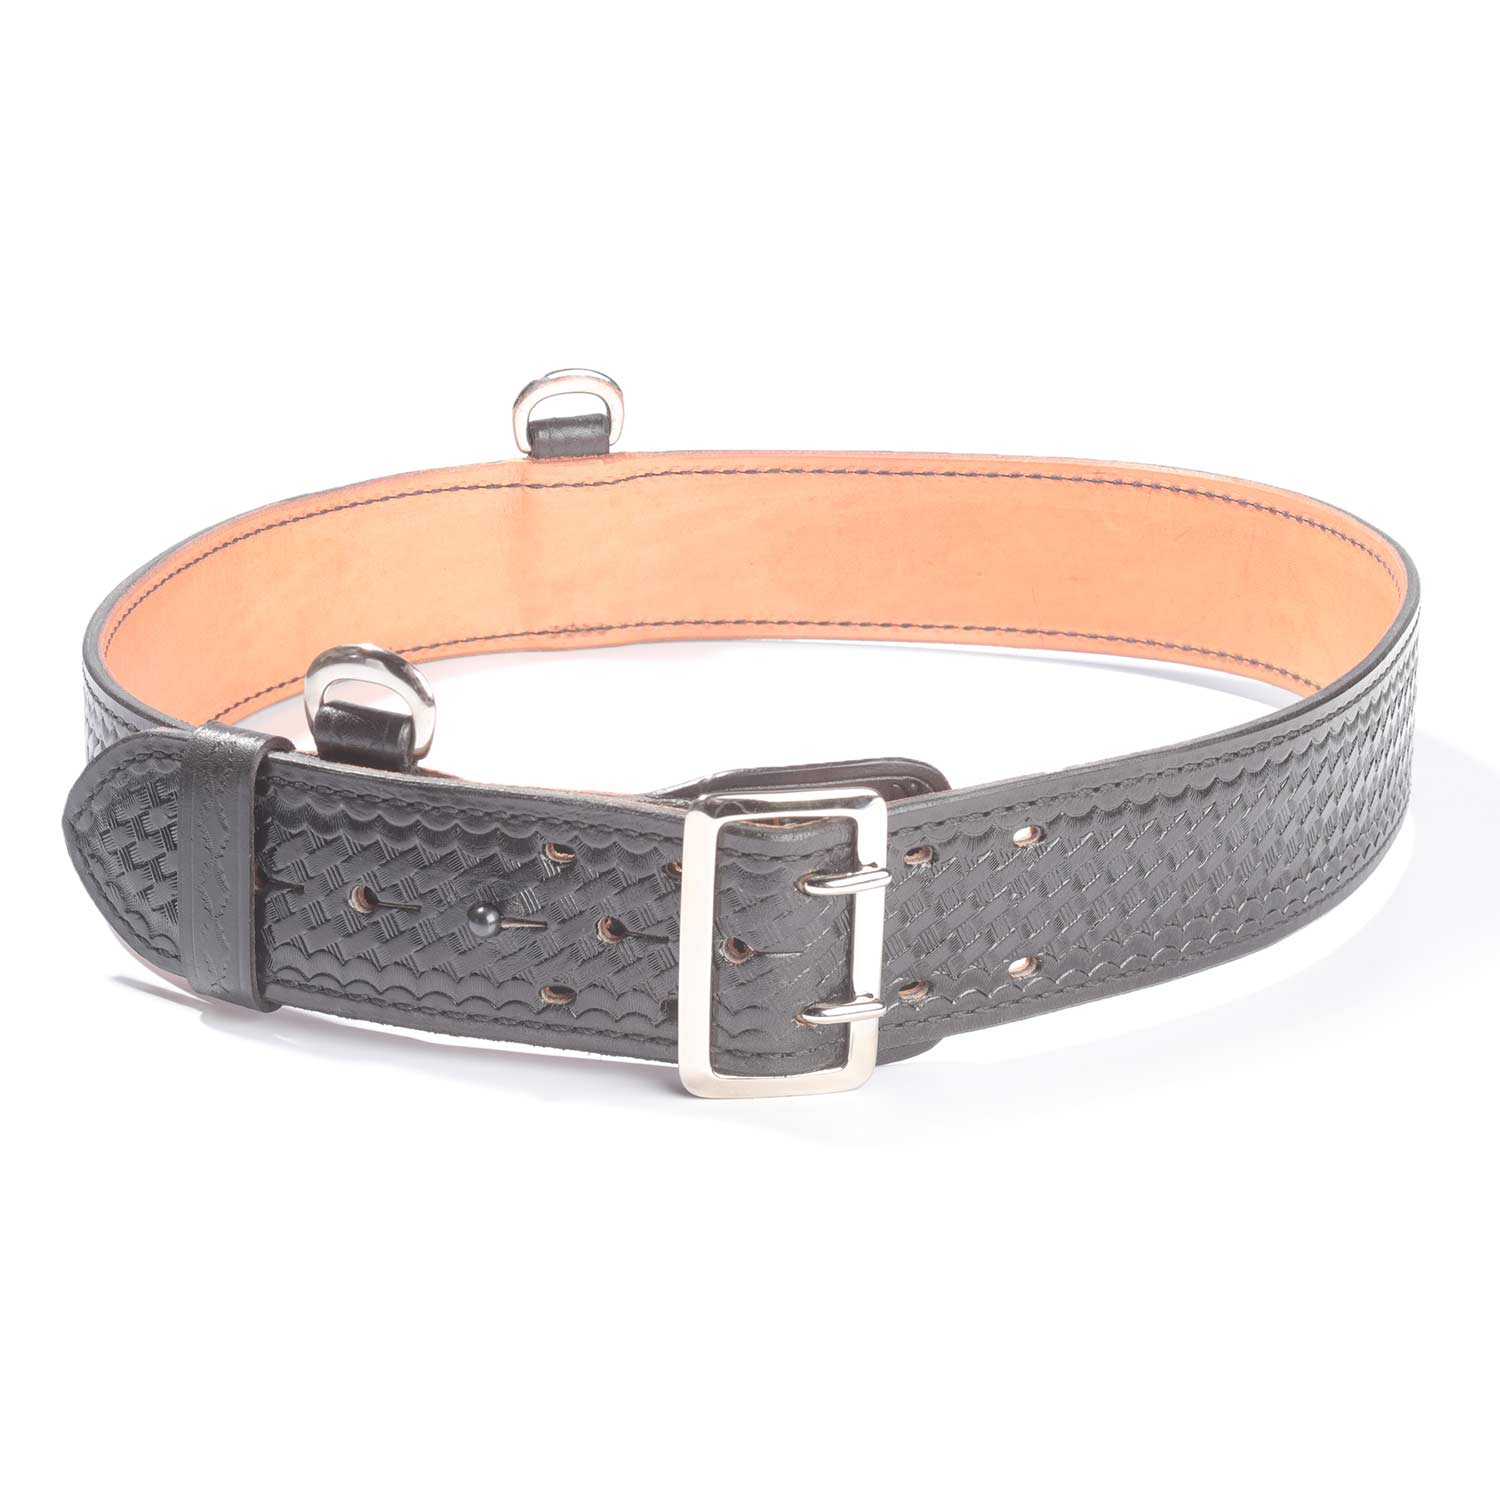 Tex Shoemaker Duty Belt with D-Rings